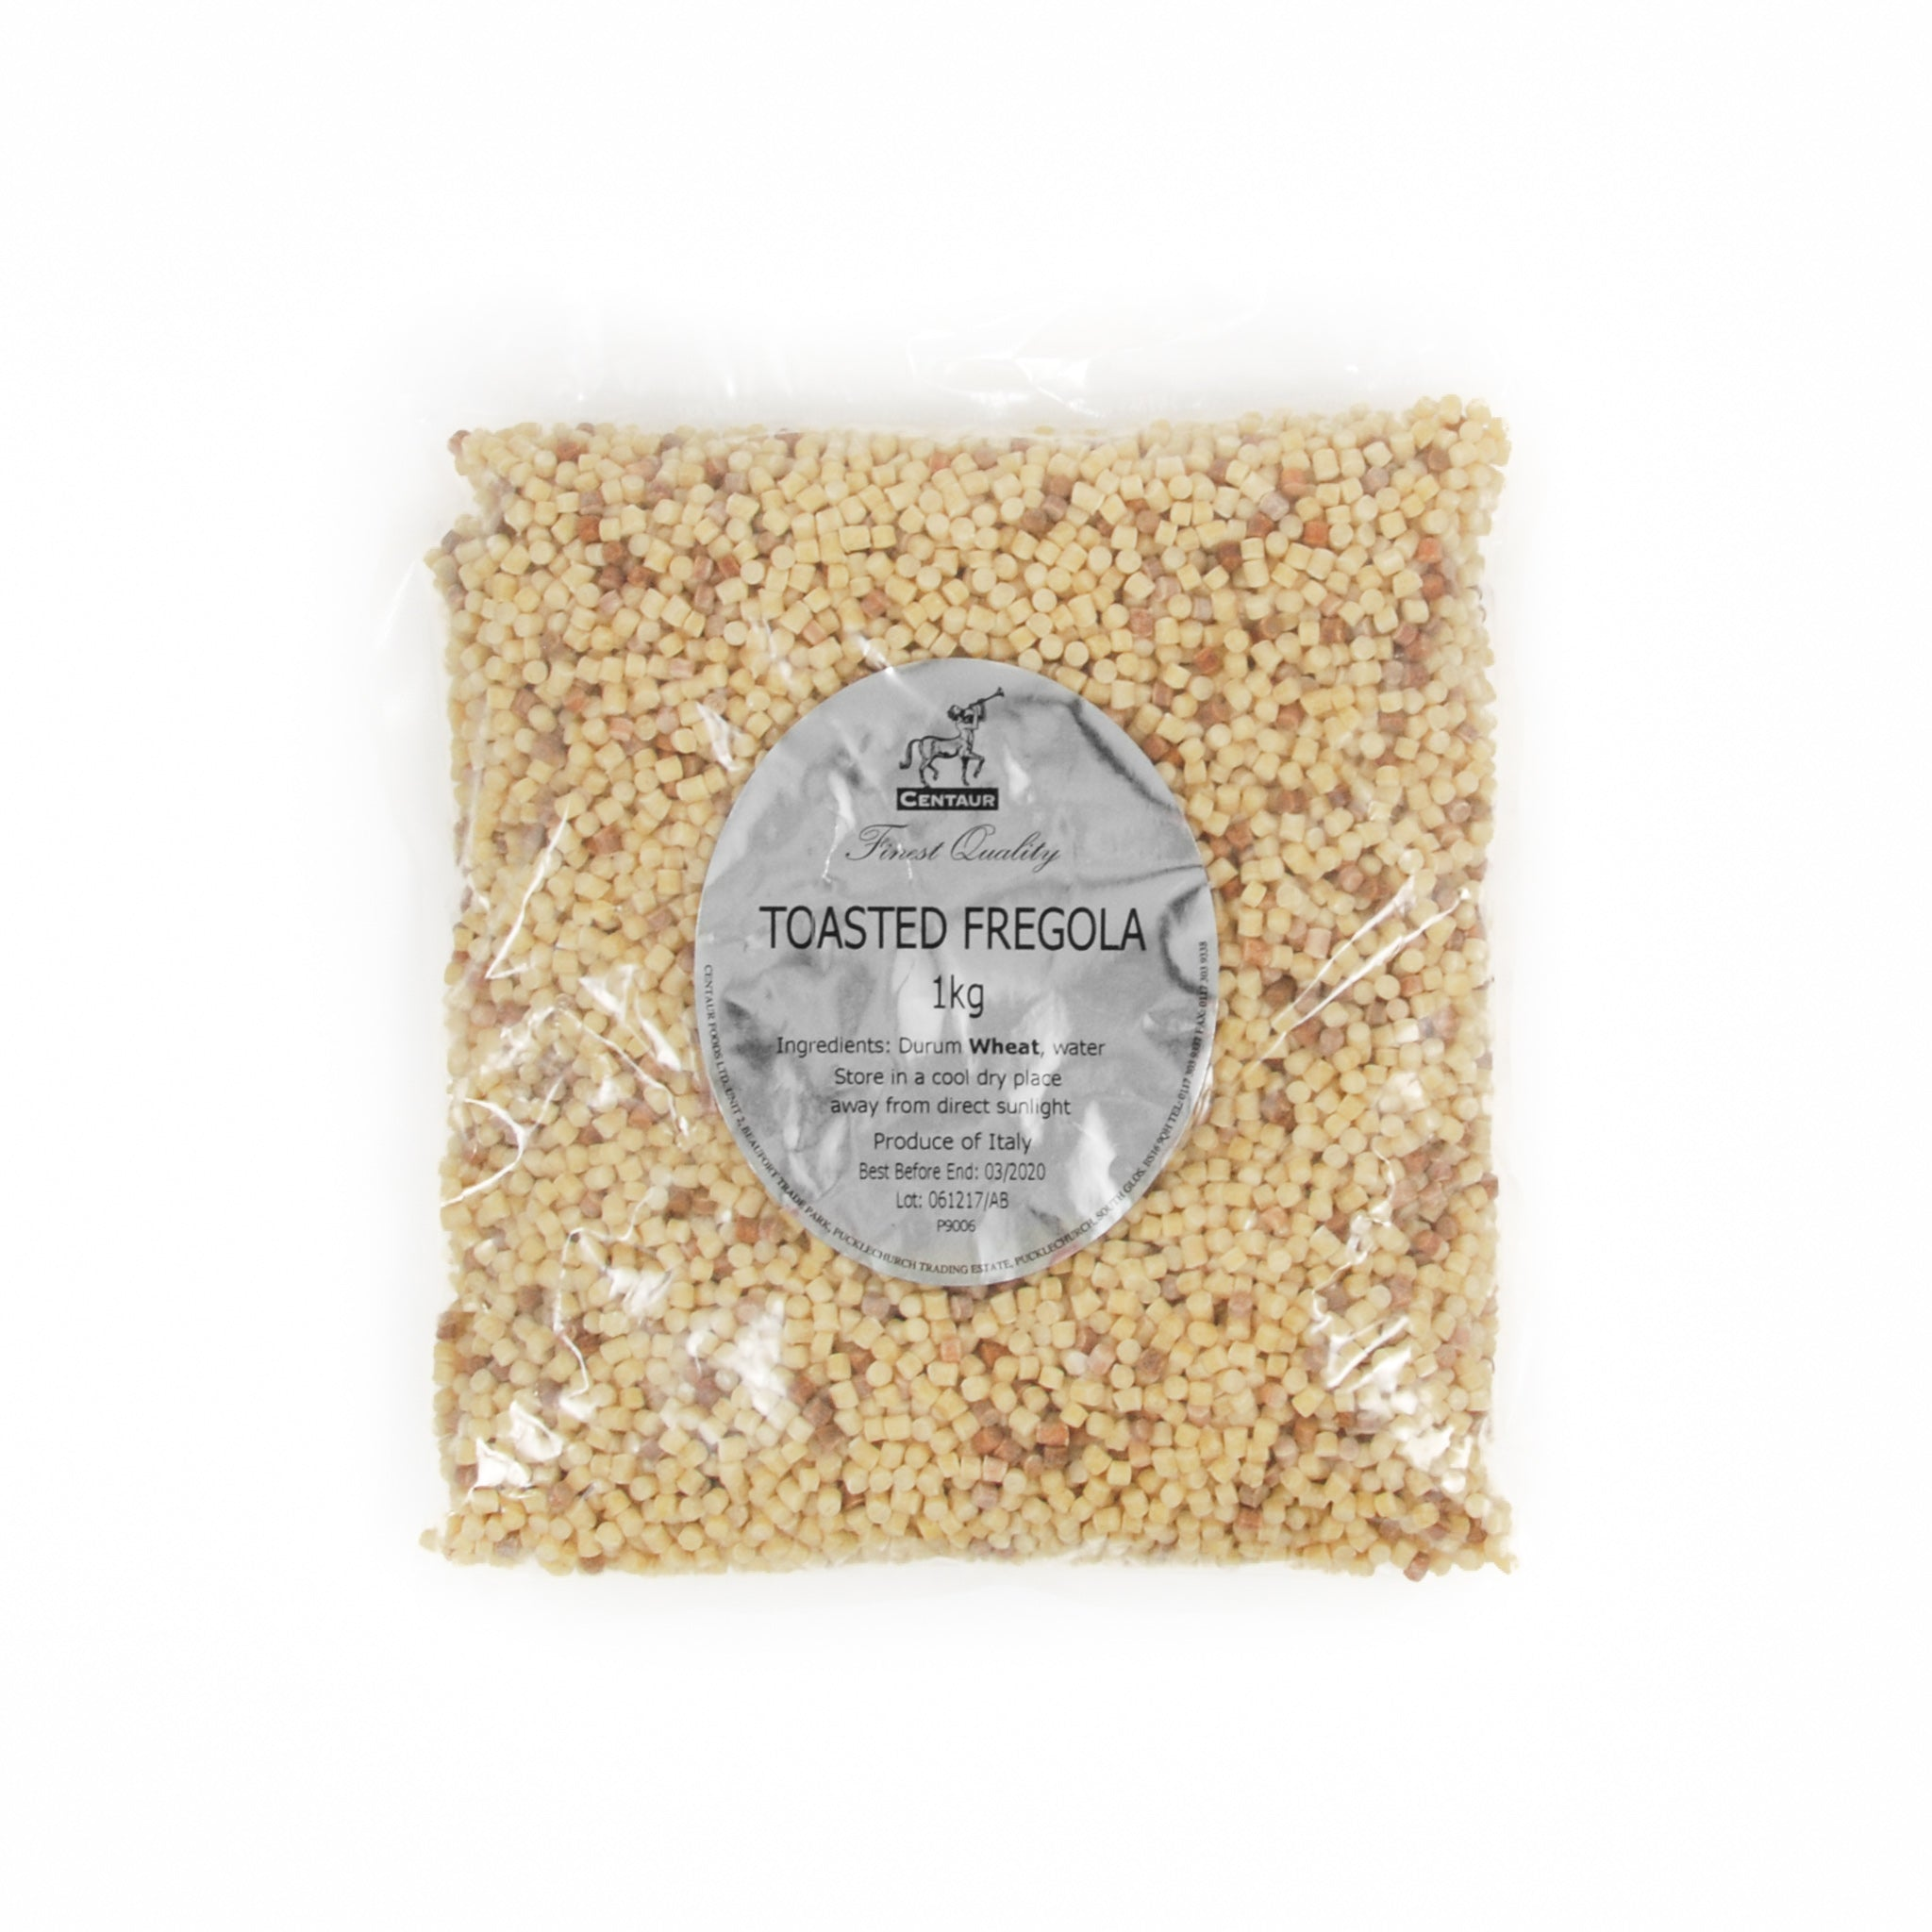 Centaur Fregola 1kg Ingredients Flour Grains & Seeds Italian Food